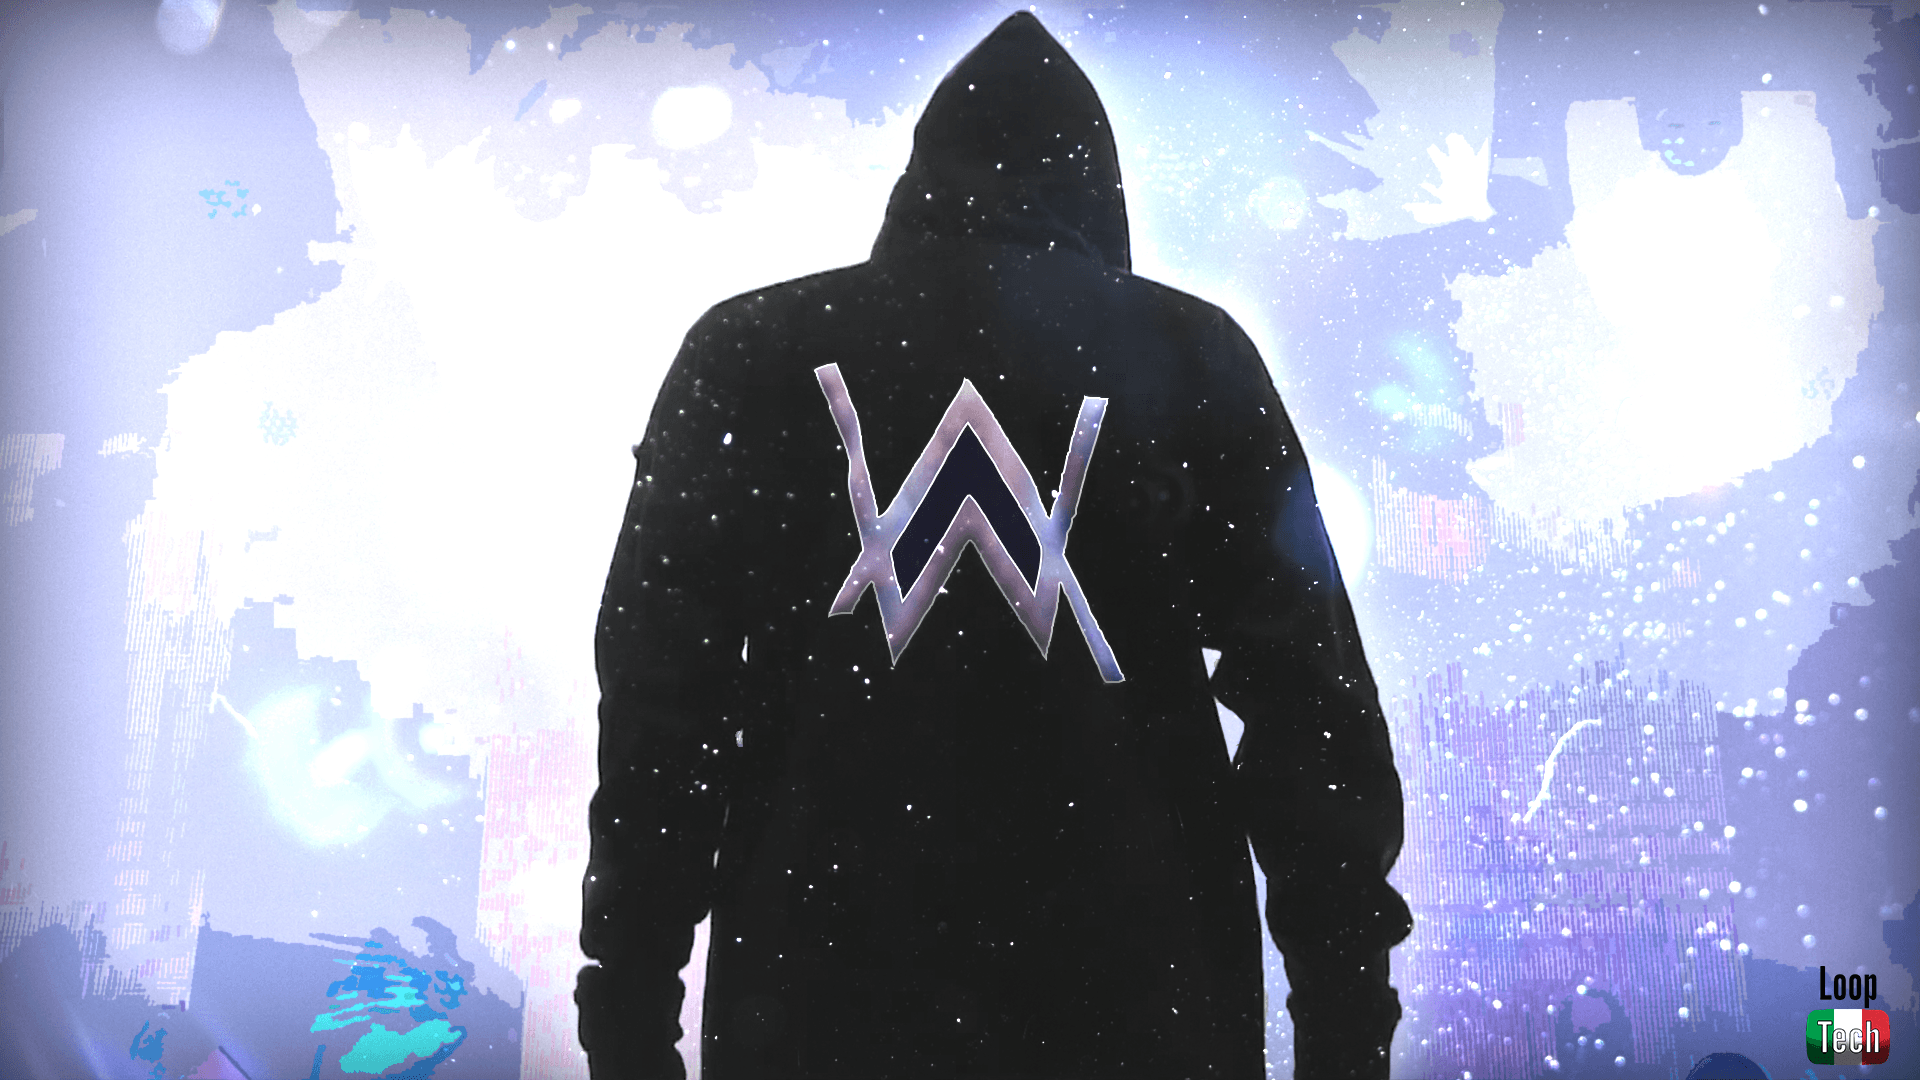 Alan Walker Wallpaper Download 4k Hd Images 100 Pics